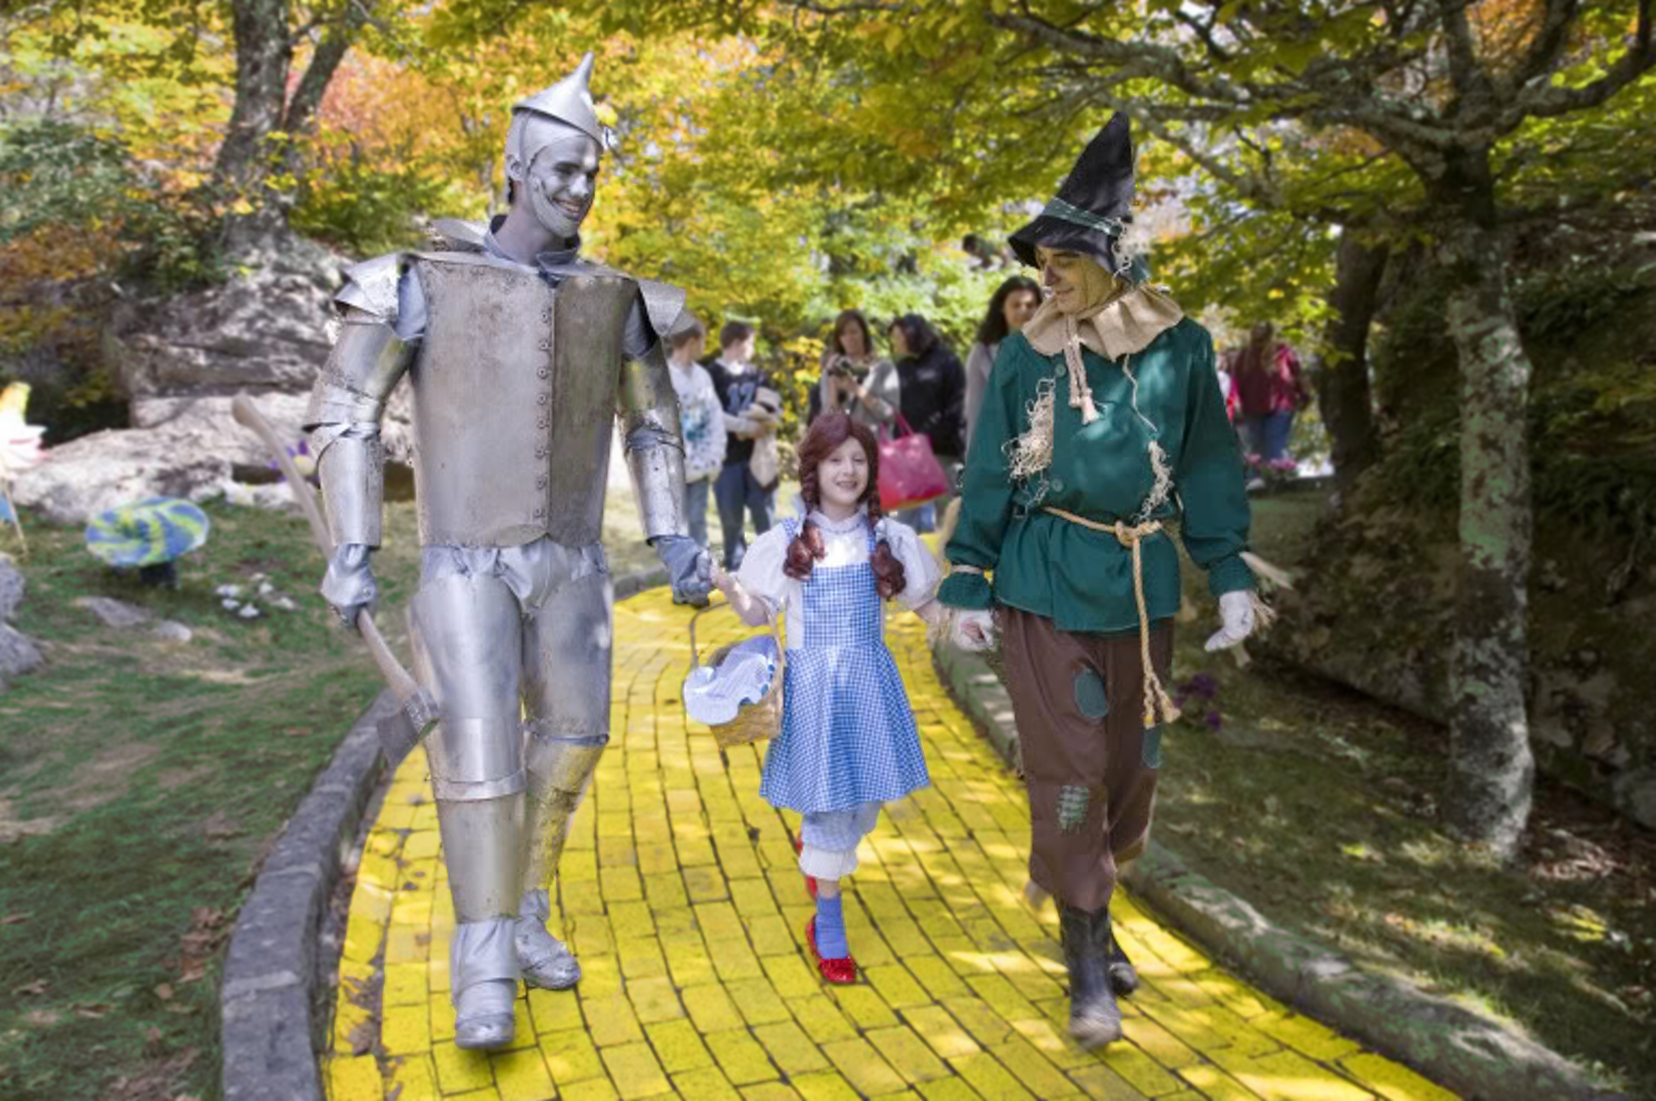 North Carolina S Land Of Oz Theme Park Is About To Reopen Charlotte Stories